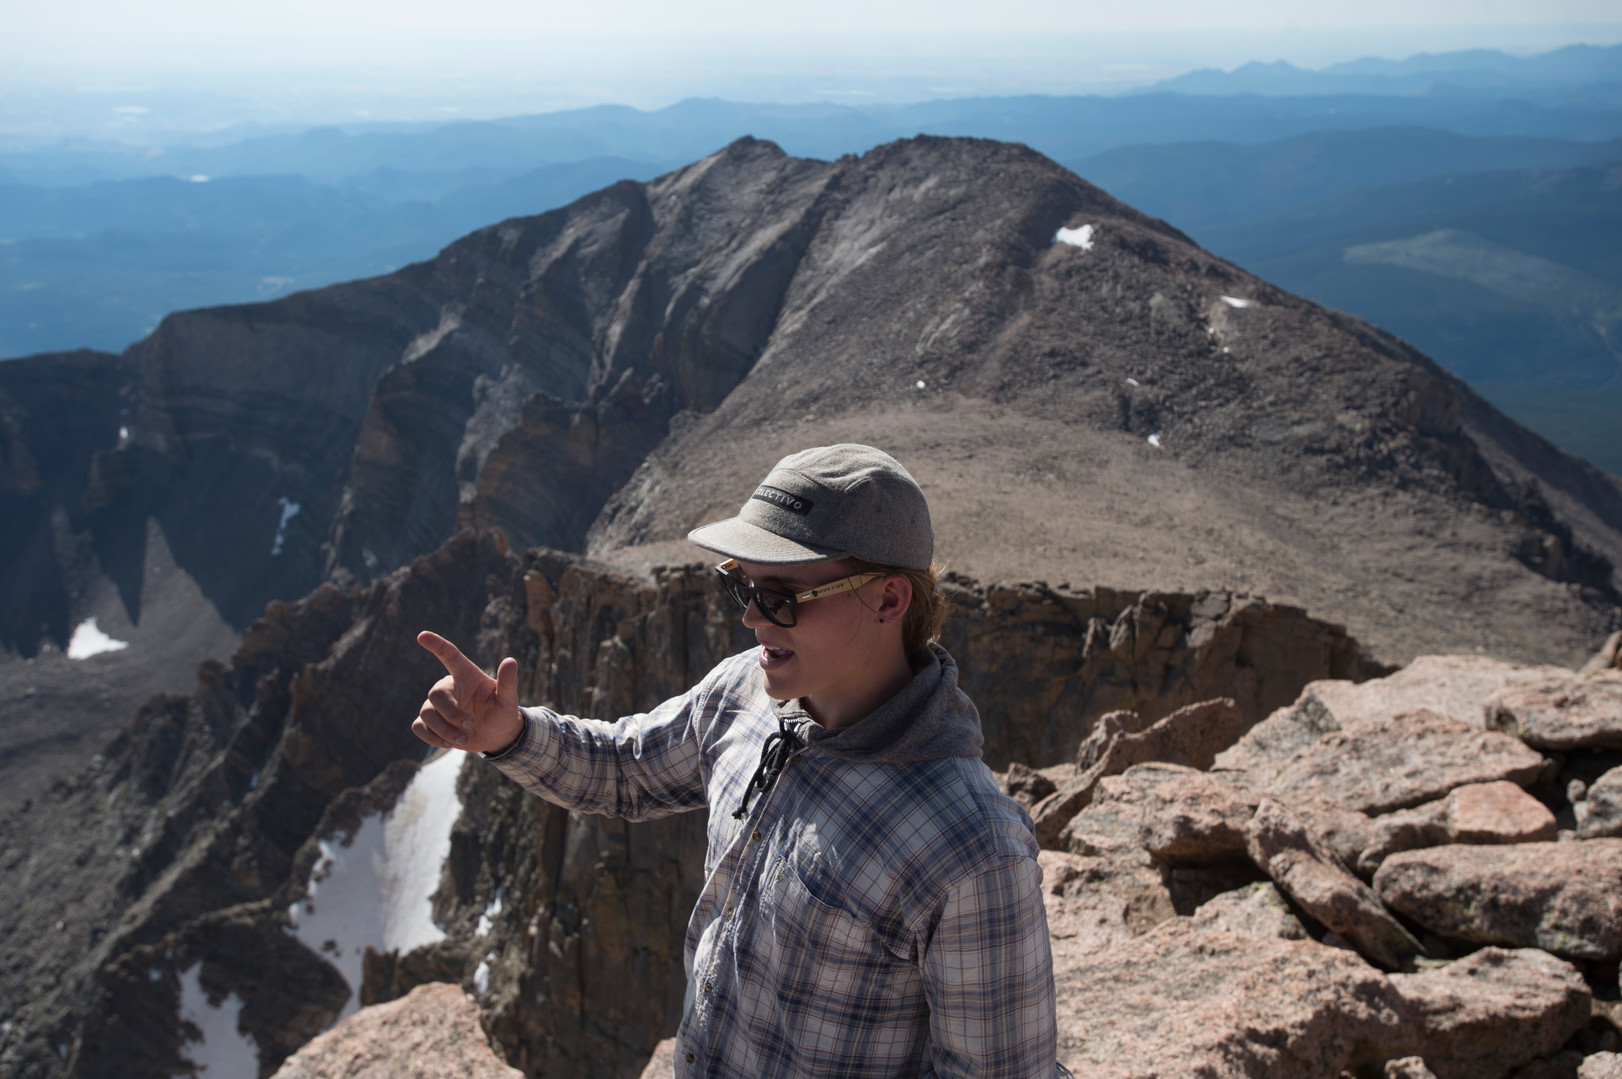 Nick Larson, from Wisconsin, takes in the view from the summit of Longs Peak in Rocky Mountain National Park on Friday, July 19, 2017. Mount Meeker, at 13,911 feet in elevation, is seen in the background.